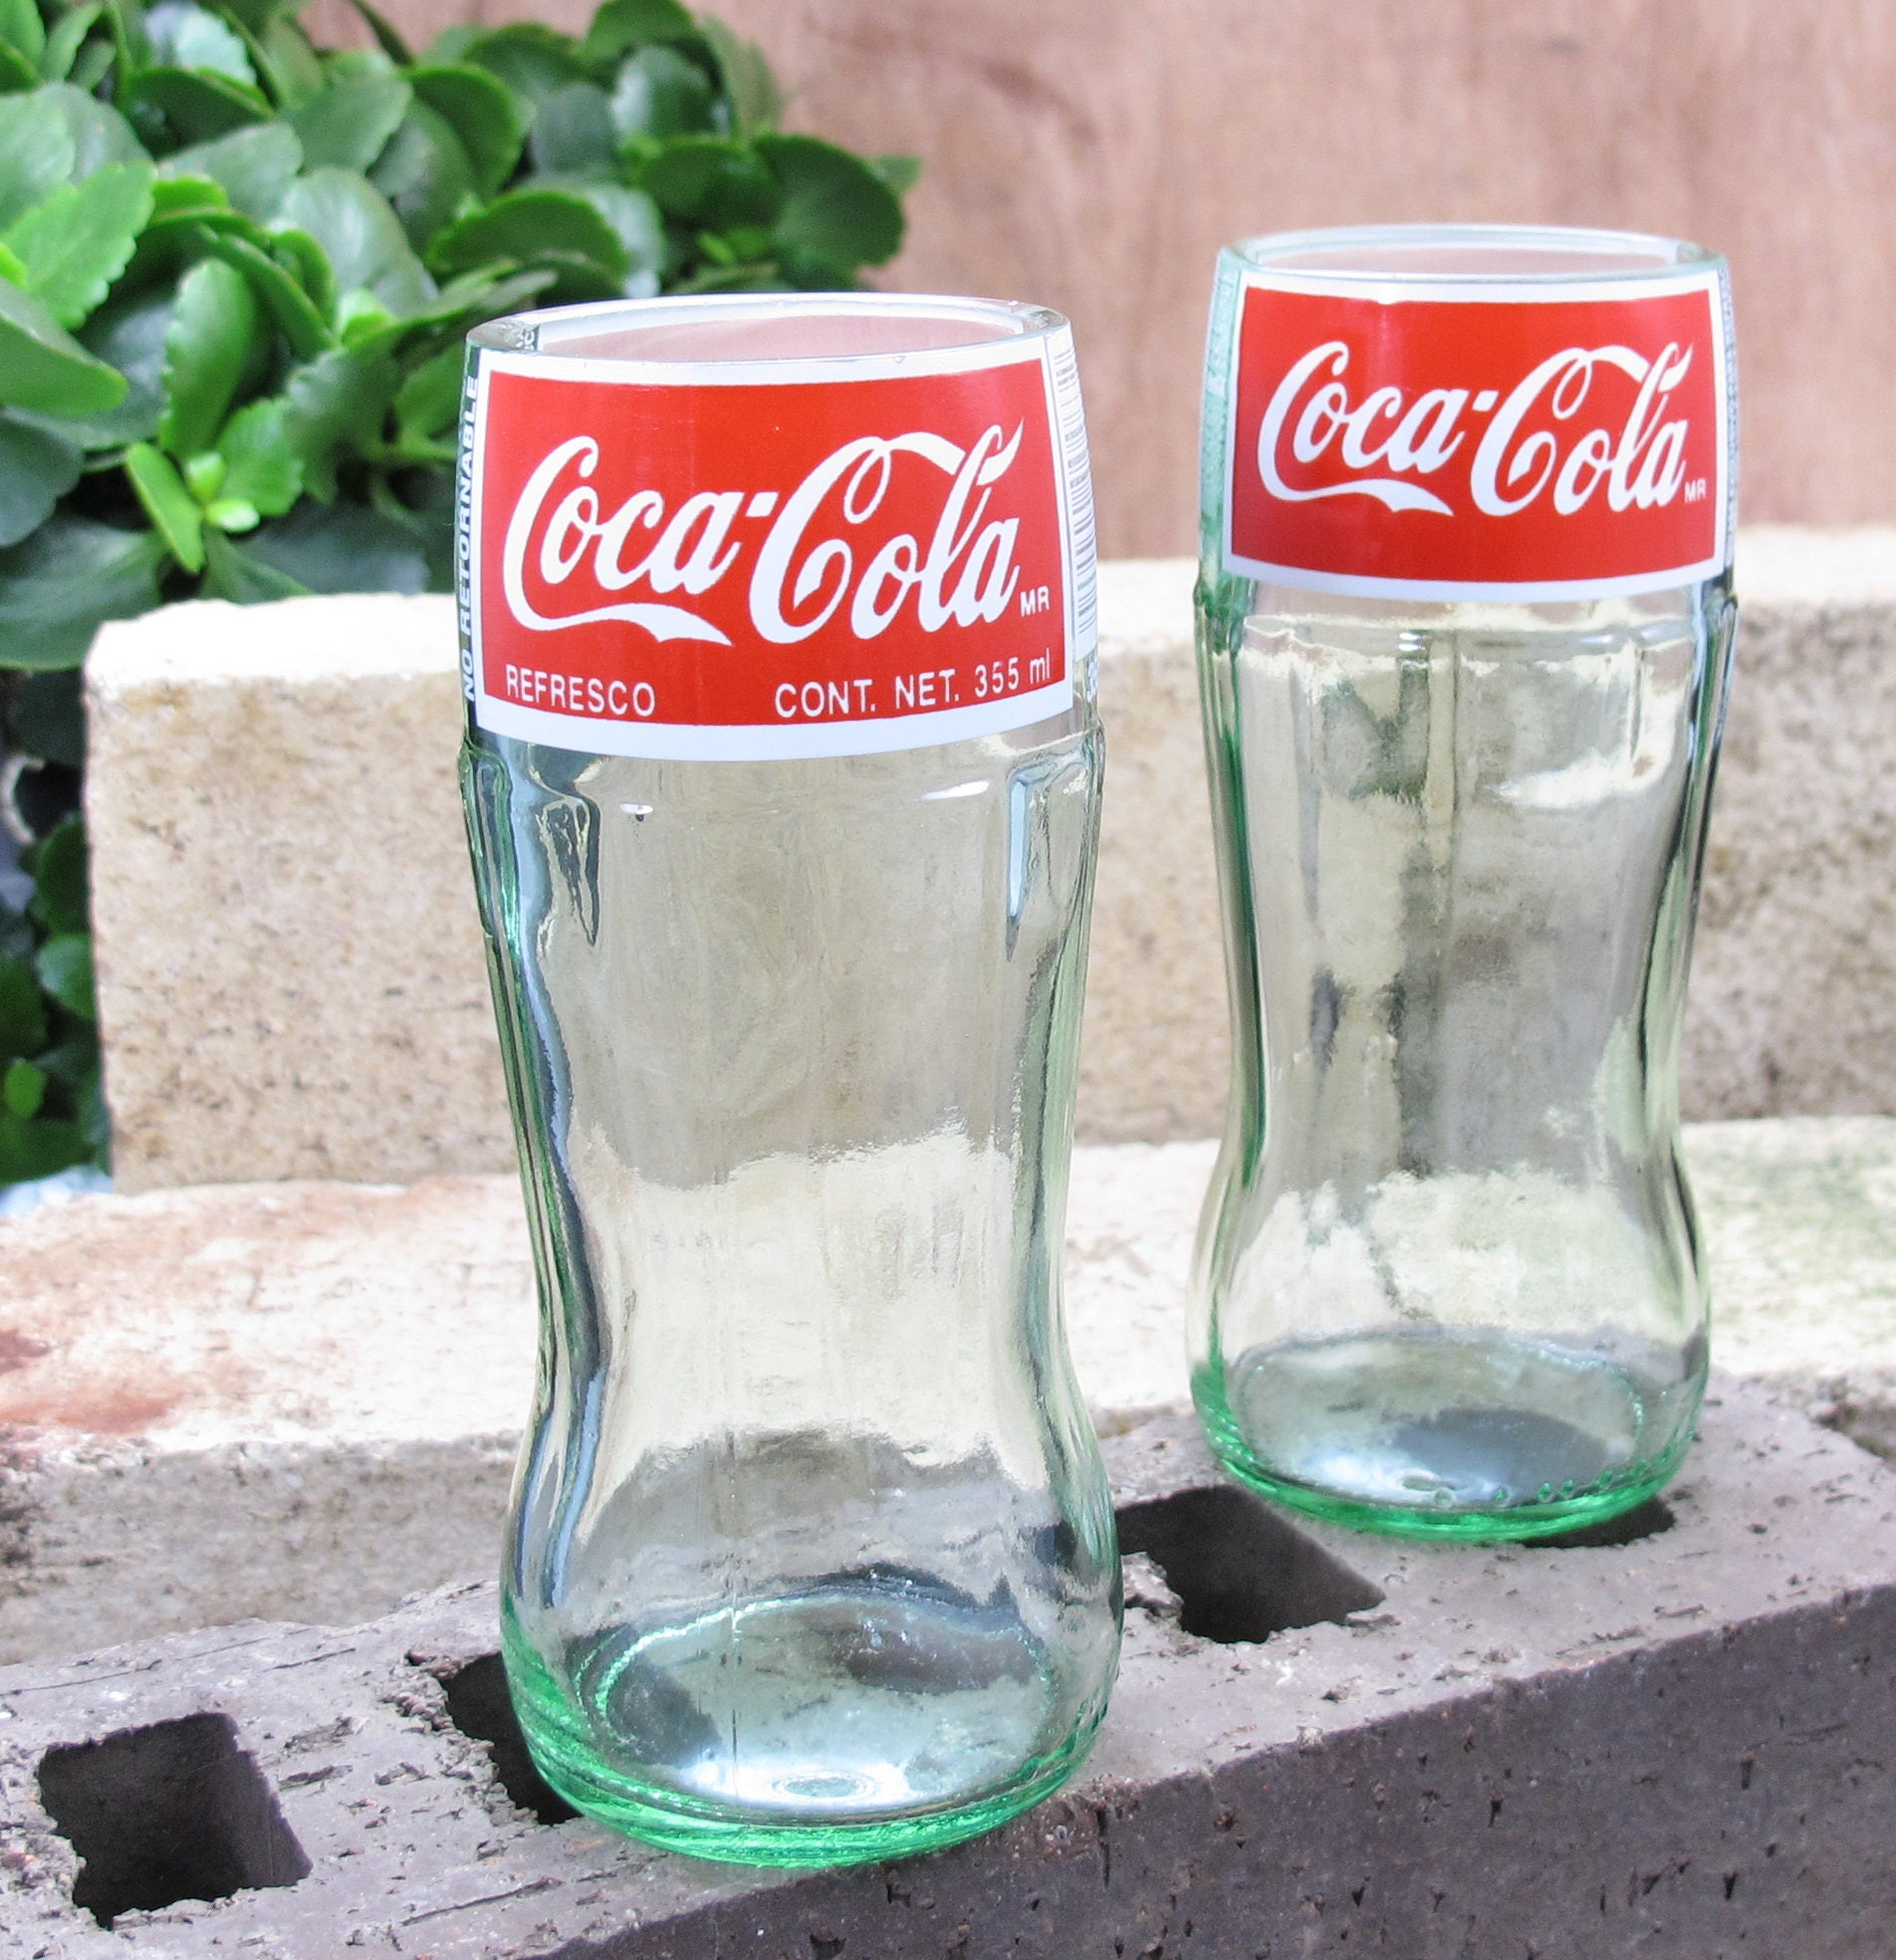 coca cola bottle drinking glass set coca cola glass fun xmas gift unusual gift wife cool christmas gifts uncommon gift meaningful gifts soda